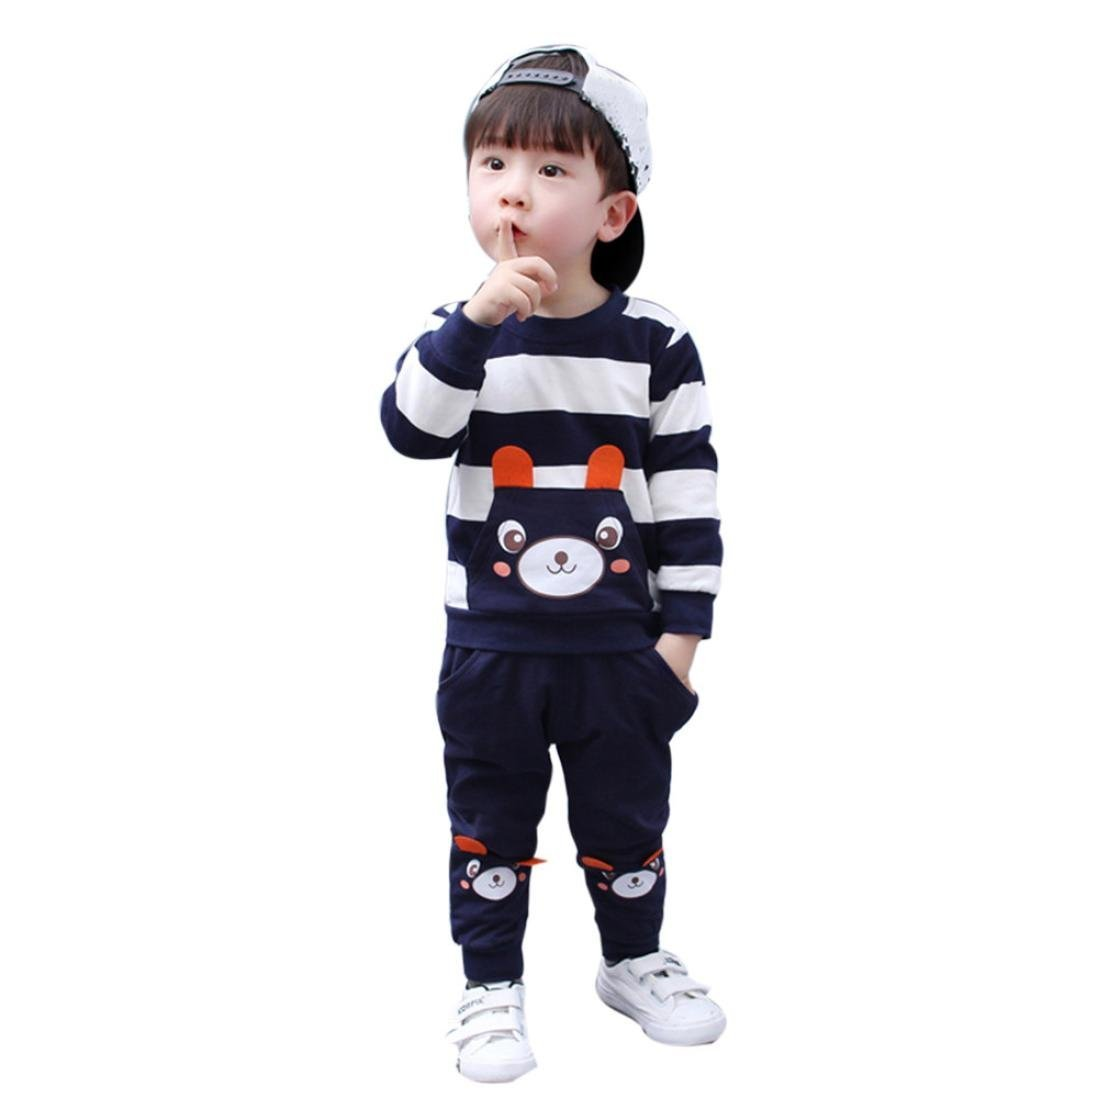 Hot Sale Autumn Winter Kids Baby 2Pcs Set Cute Striped Bear Long Sleeve Tops Sweatshirt + Pants With Pockets (Navy, 3T) by Aritone - Baby Clothes (Image #2)